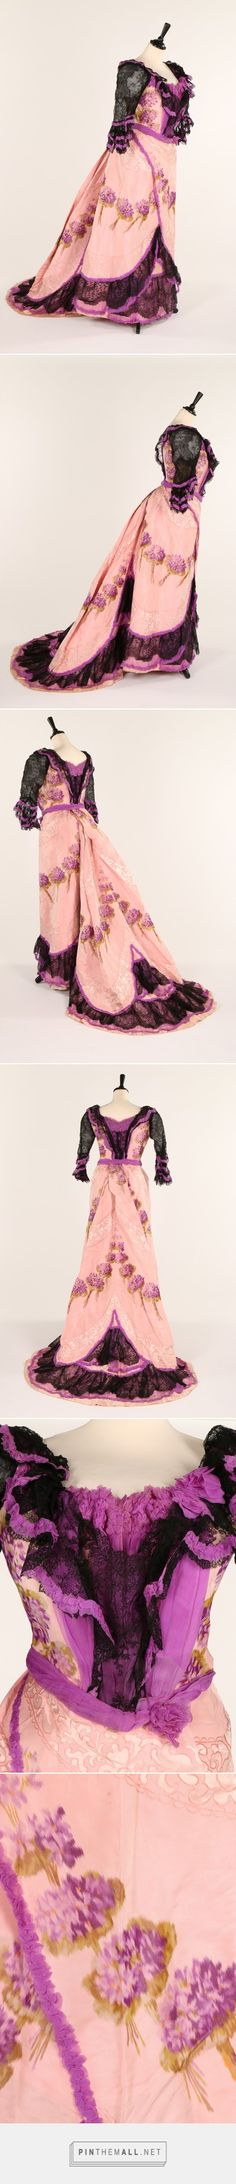 Circa 1900 pink and purple chiné taffeta evening gown woven with sprays of violets and edged in purple and black chiffon and lace.